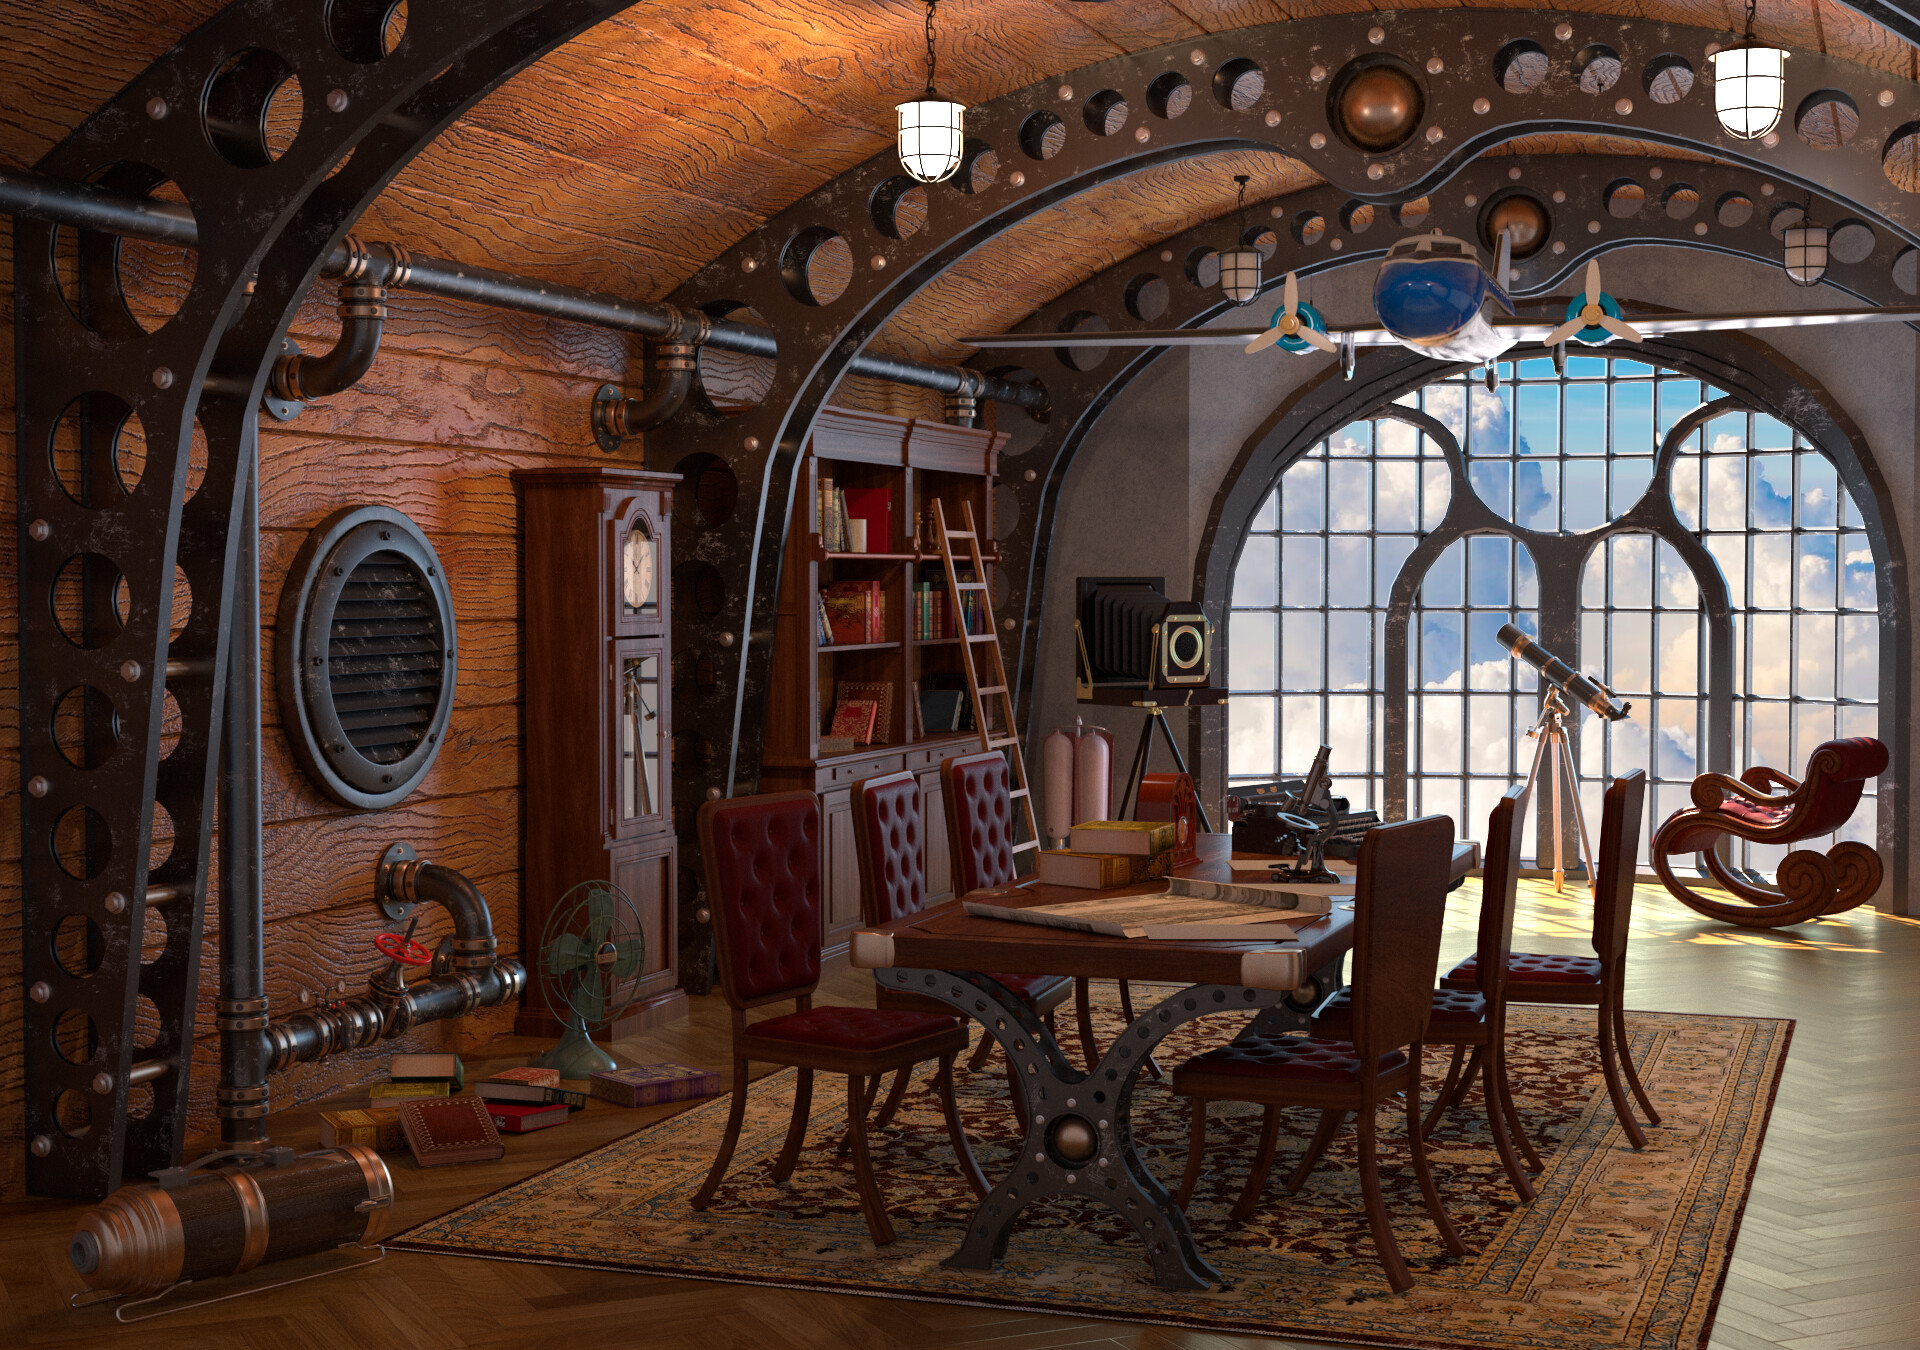 Steampunk Style Meeting Room Interior, Steampunk Living Room